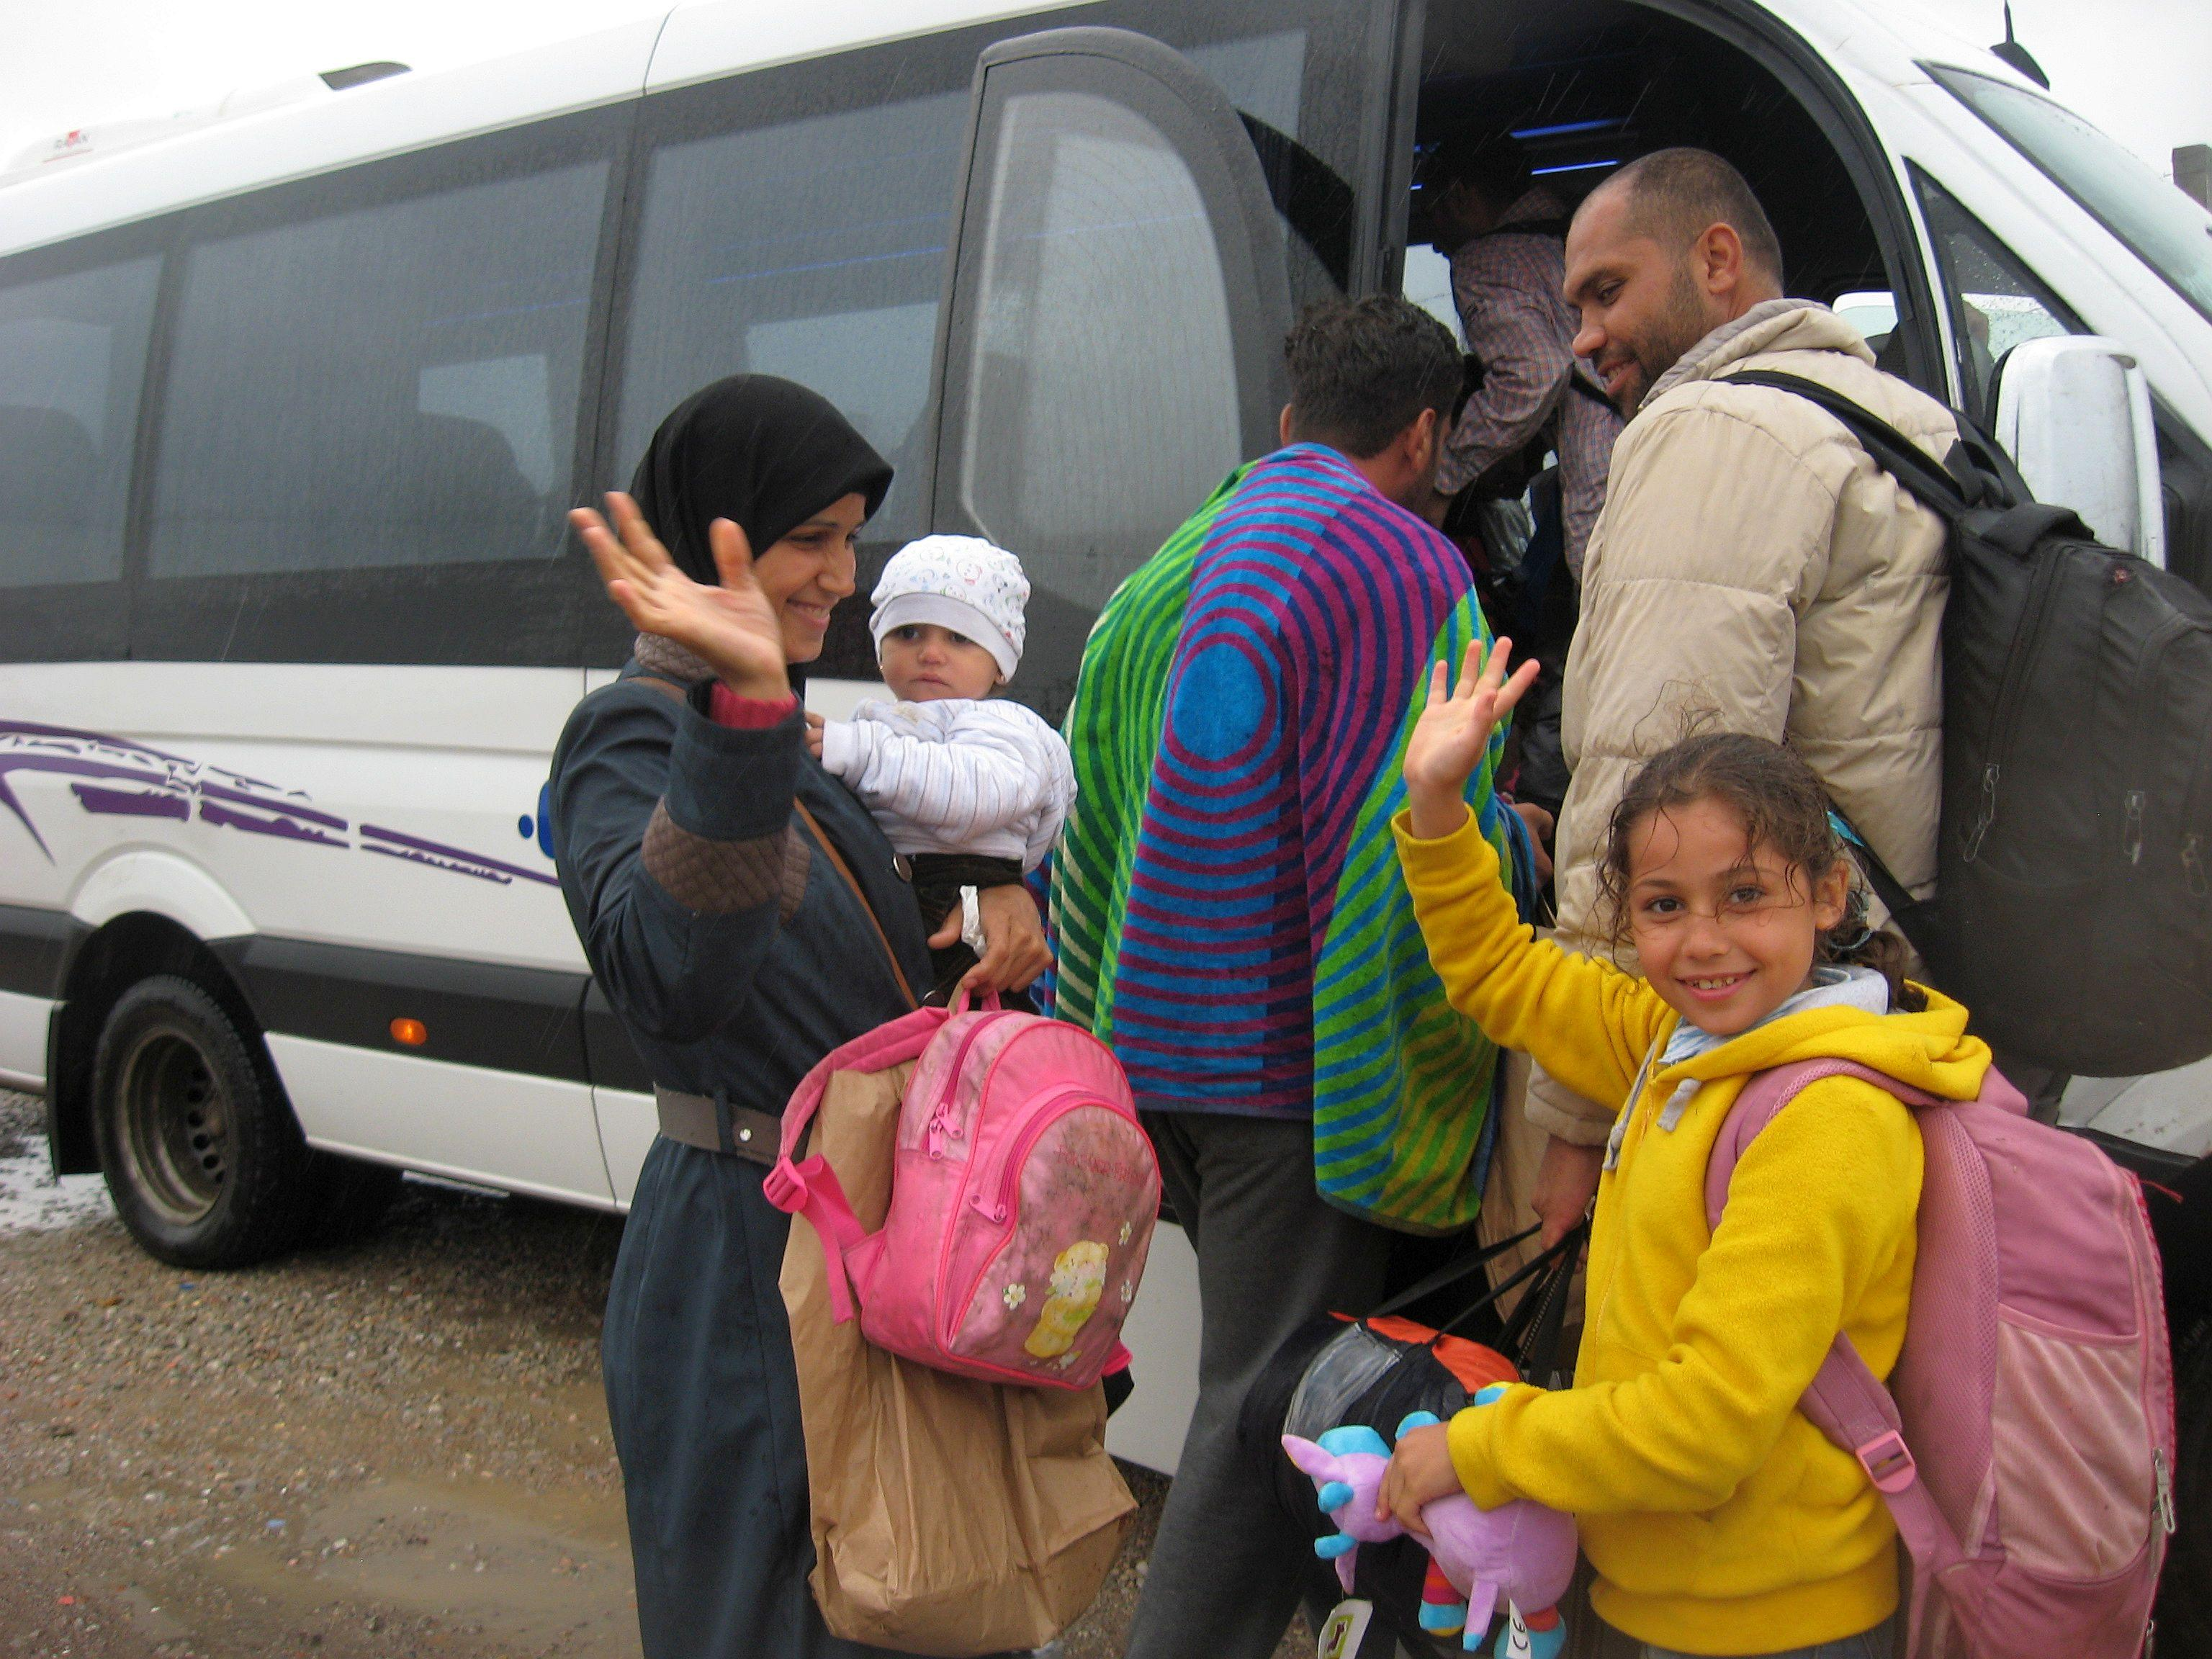 Omama (in yellow) waves goodbye as her family board a bus for Hungary. Photo by Kira Horvath for CRS